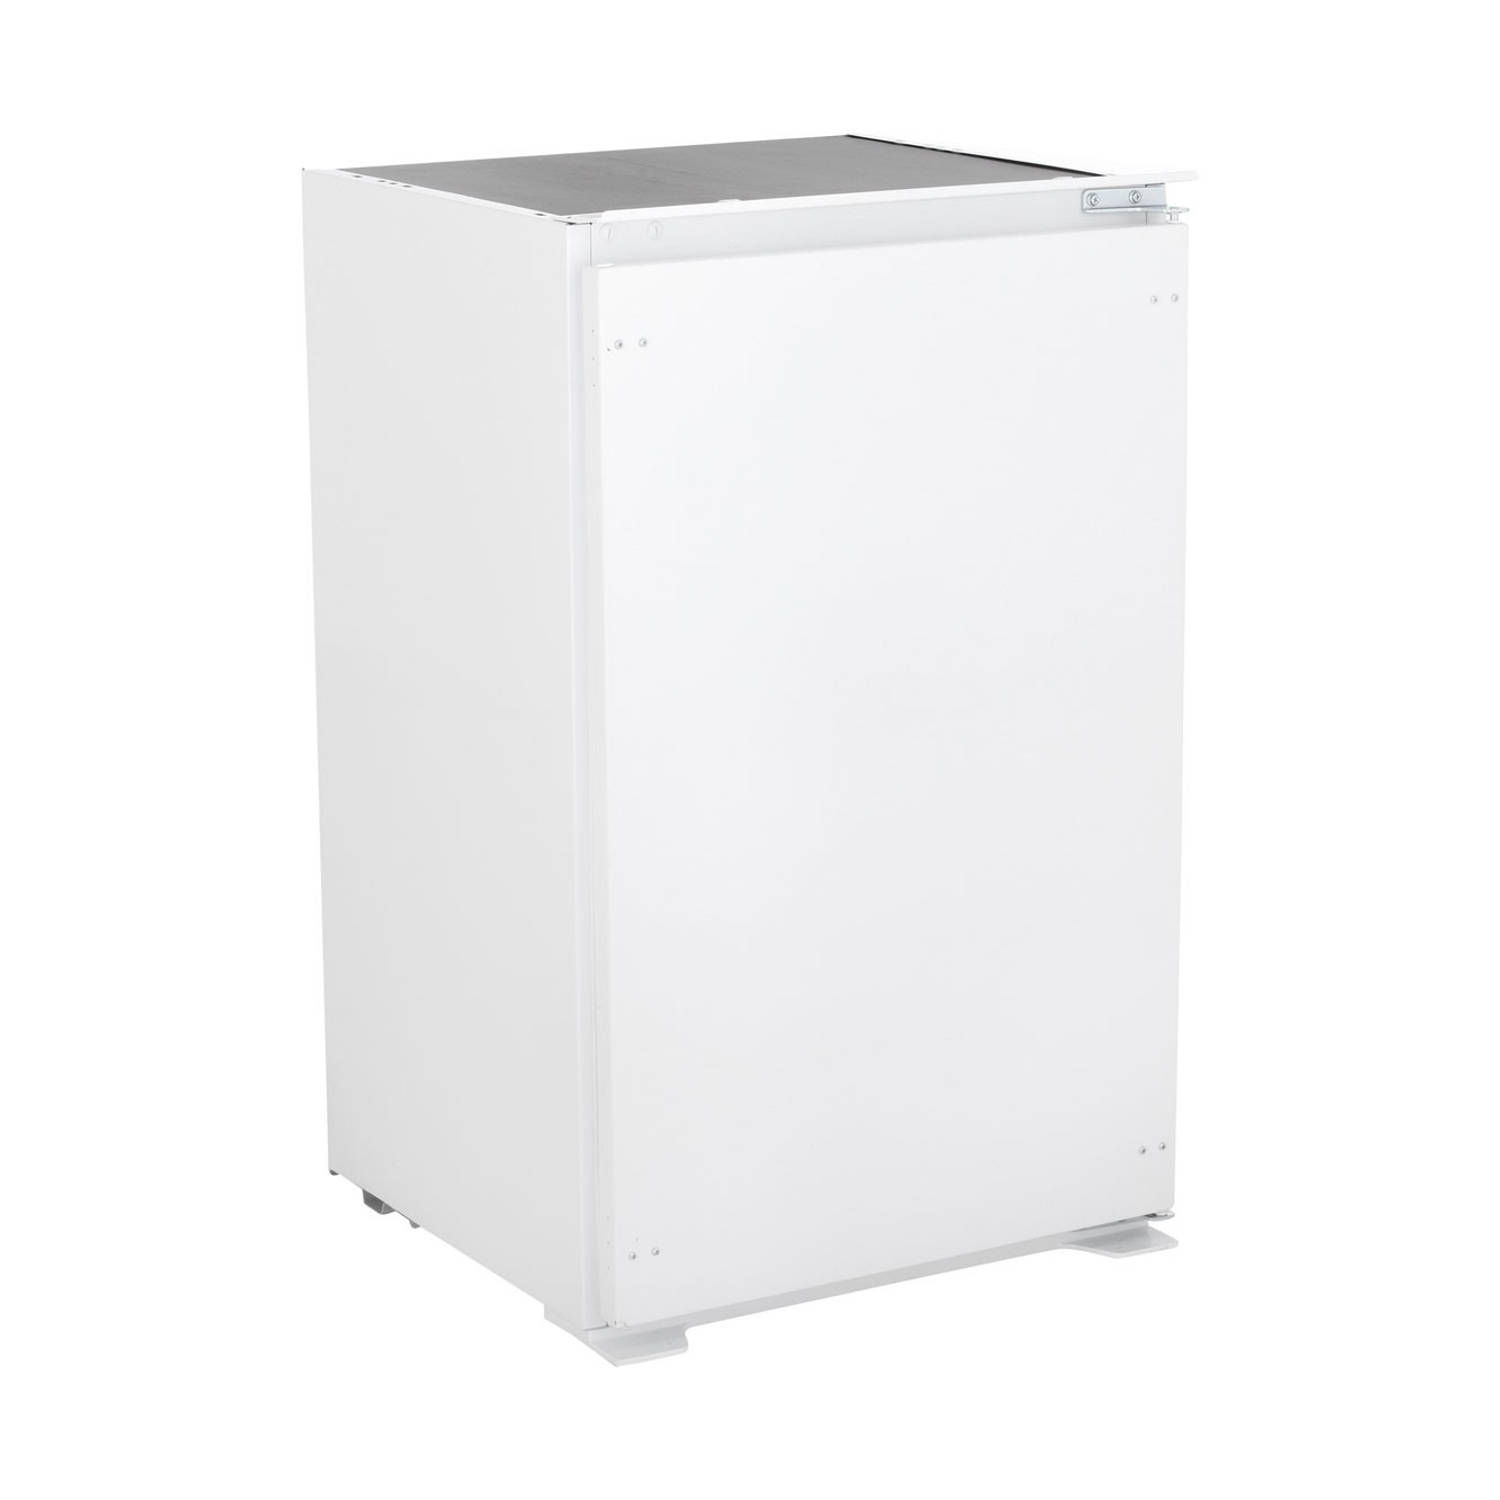 Indesit IN S 902 AA koelkast - Wit